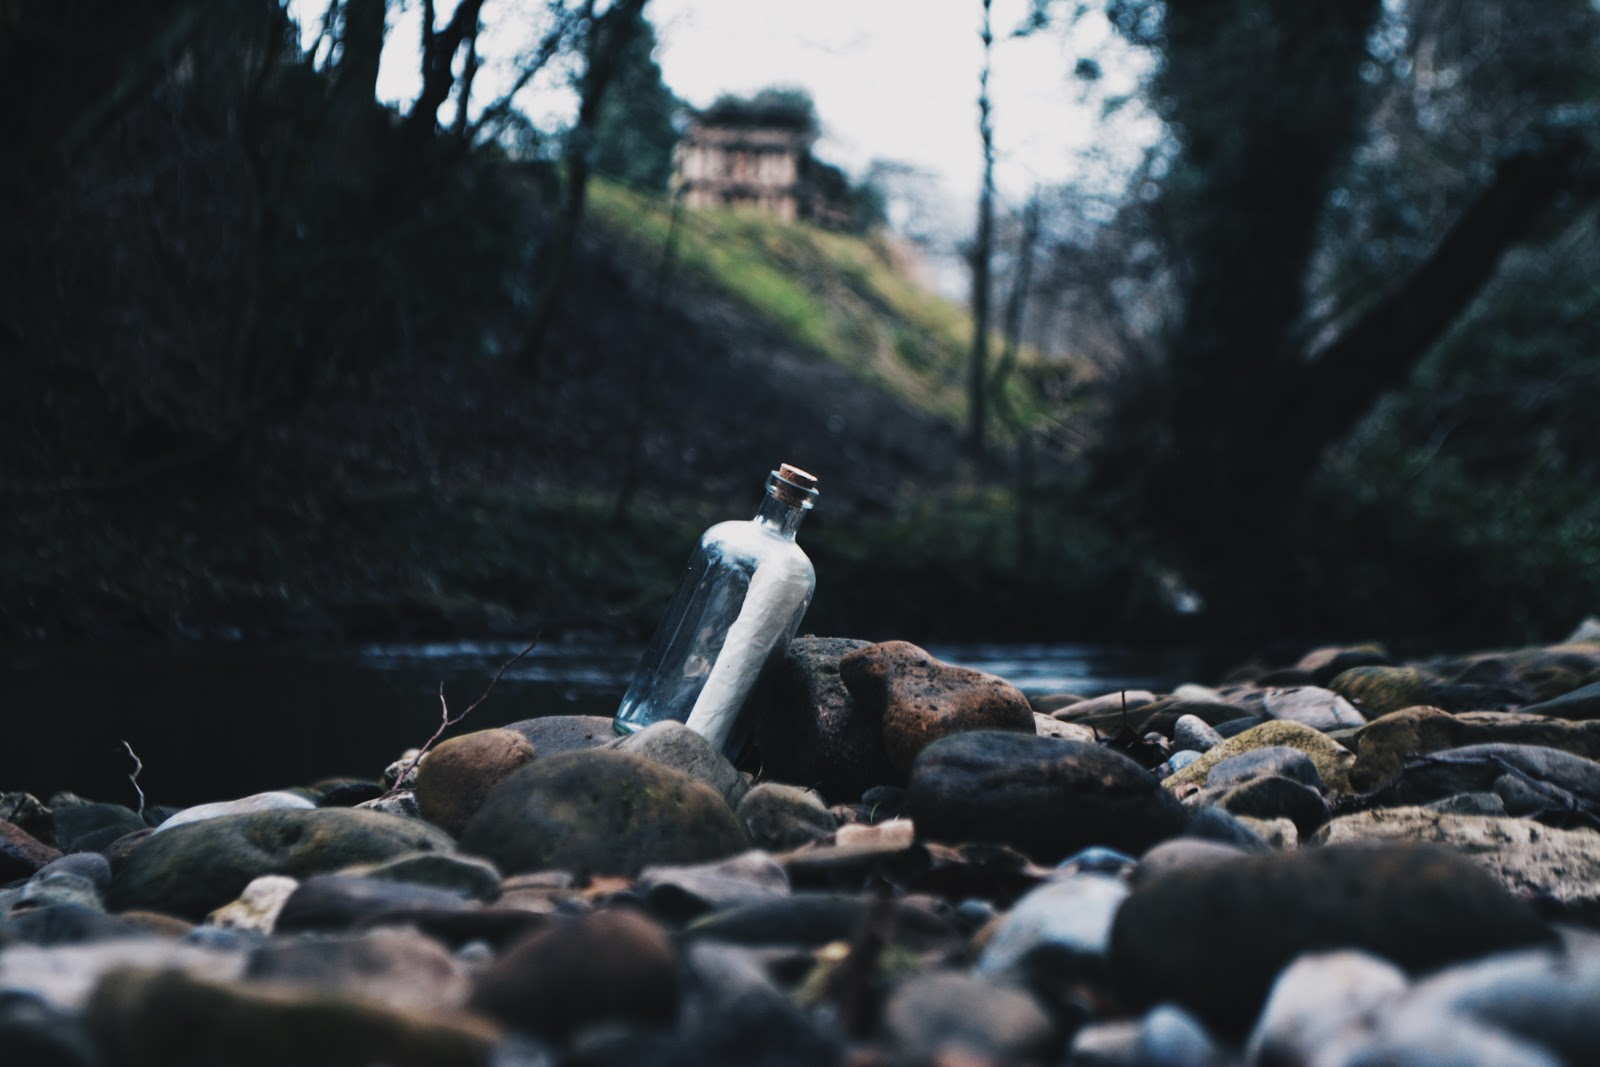 photo of a bottle with a paper inside it placed on a riverbed recreating the idea of a message in a bottle